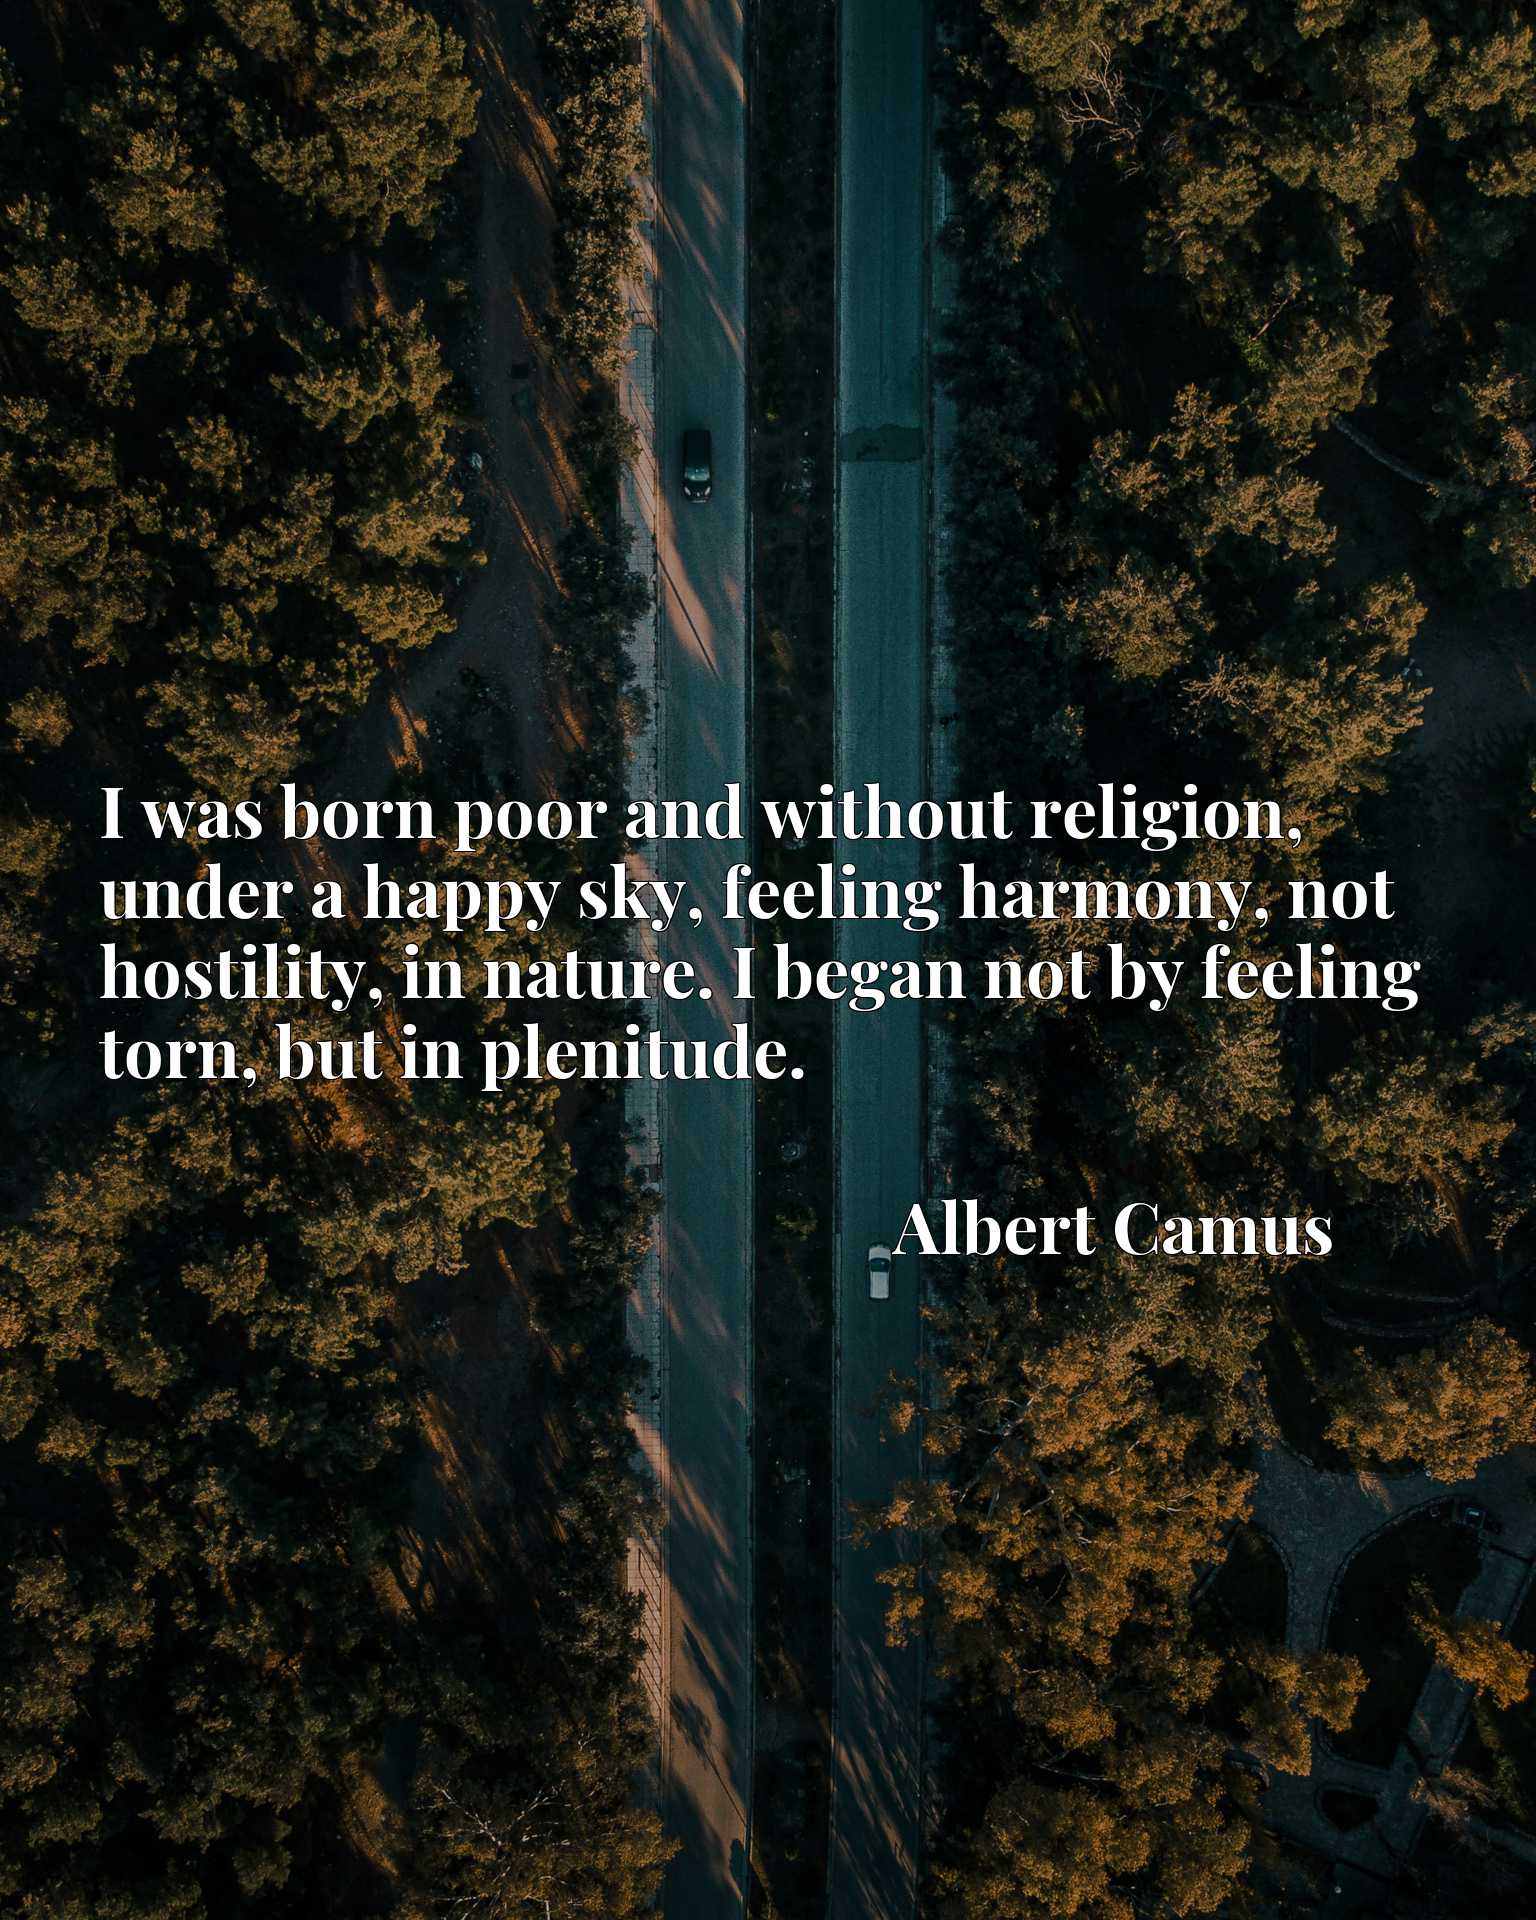 I was born poor and without religion, under a happy sky, feeling harmony, not hostility, in nature. I began not by feeling torn, but in plenitude.